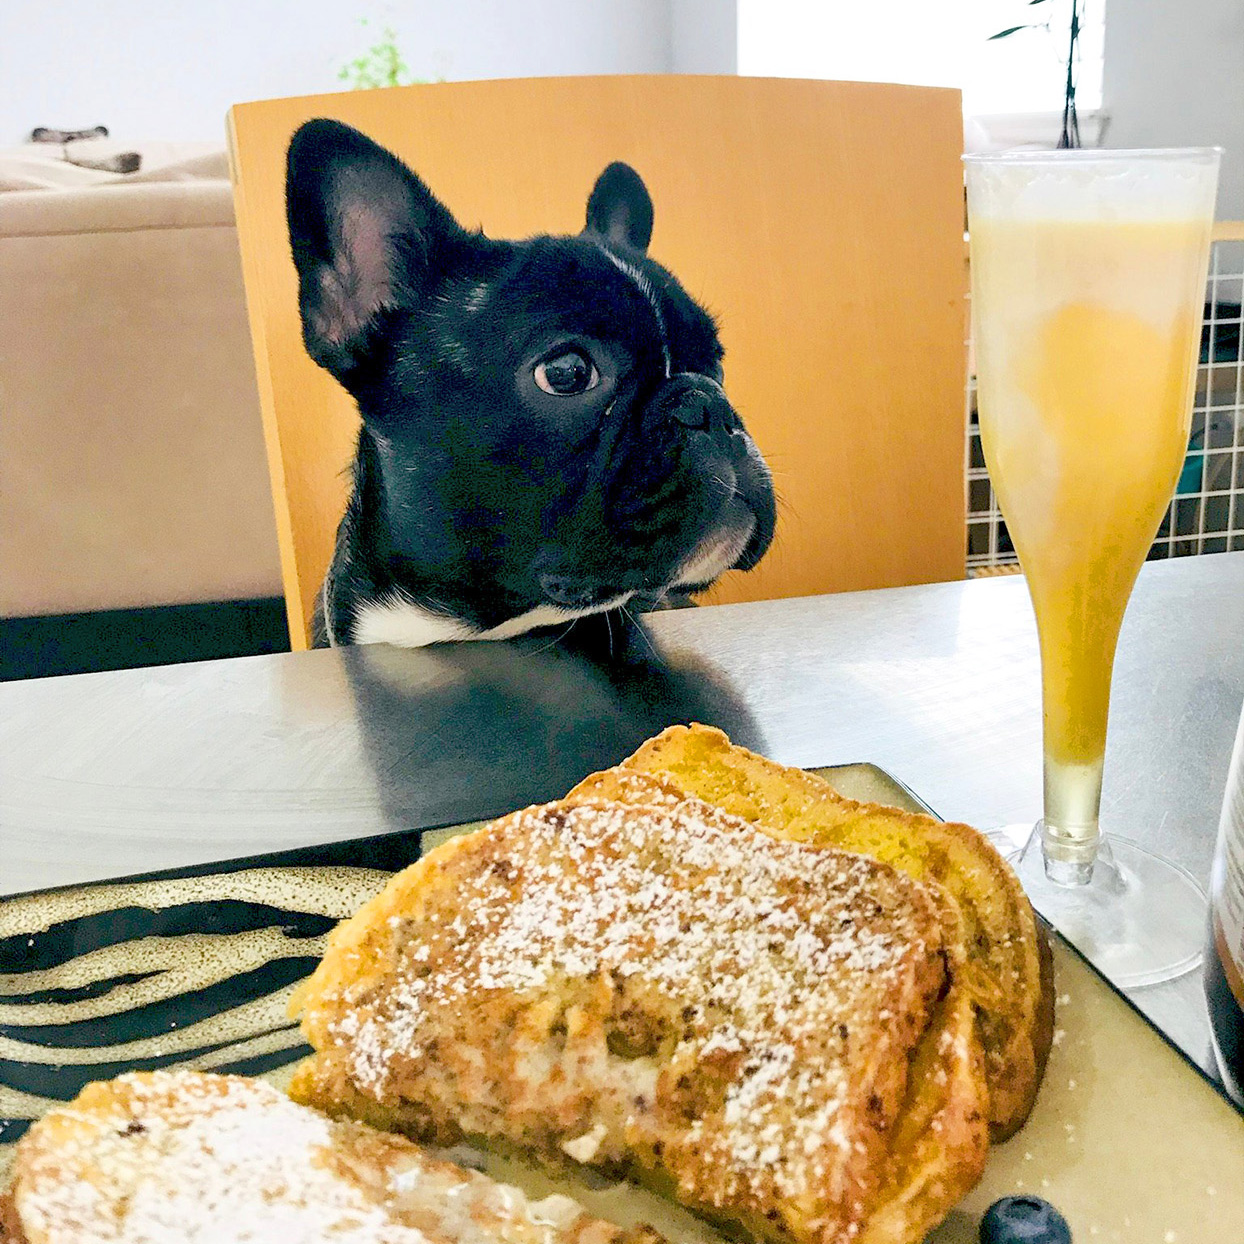 Frenchie dog sits at table in front of pastry and mimosa